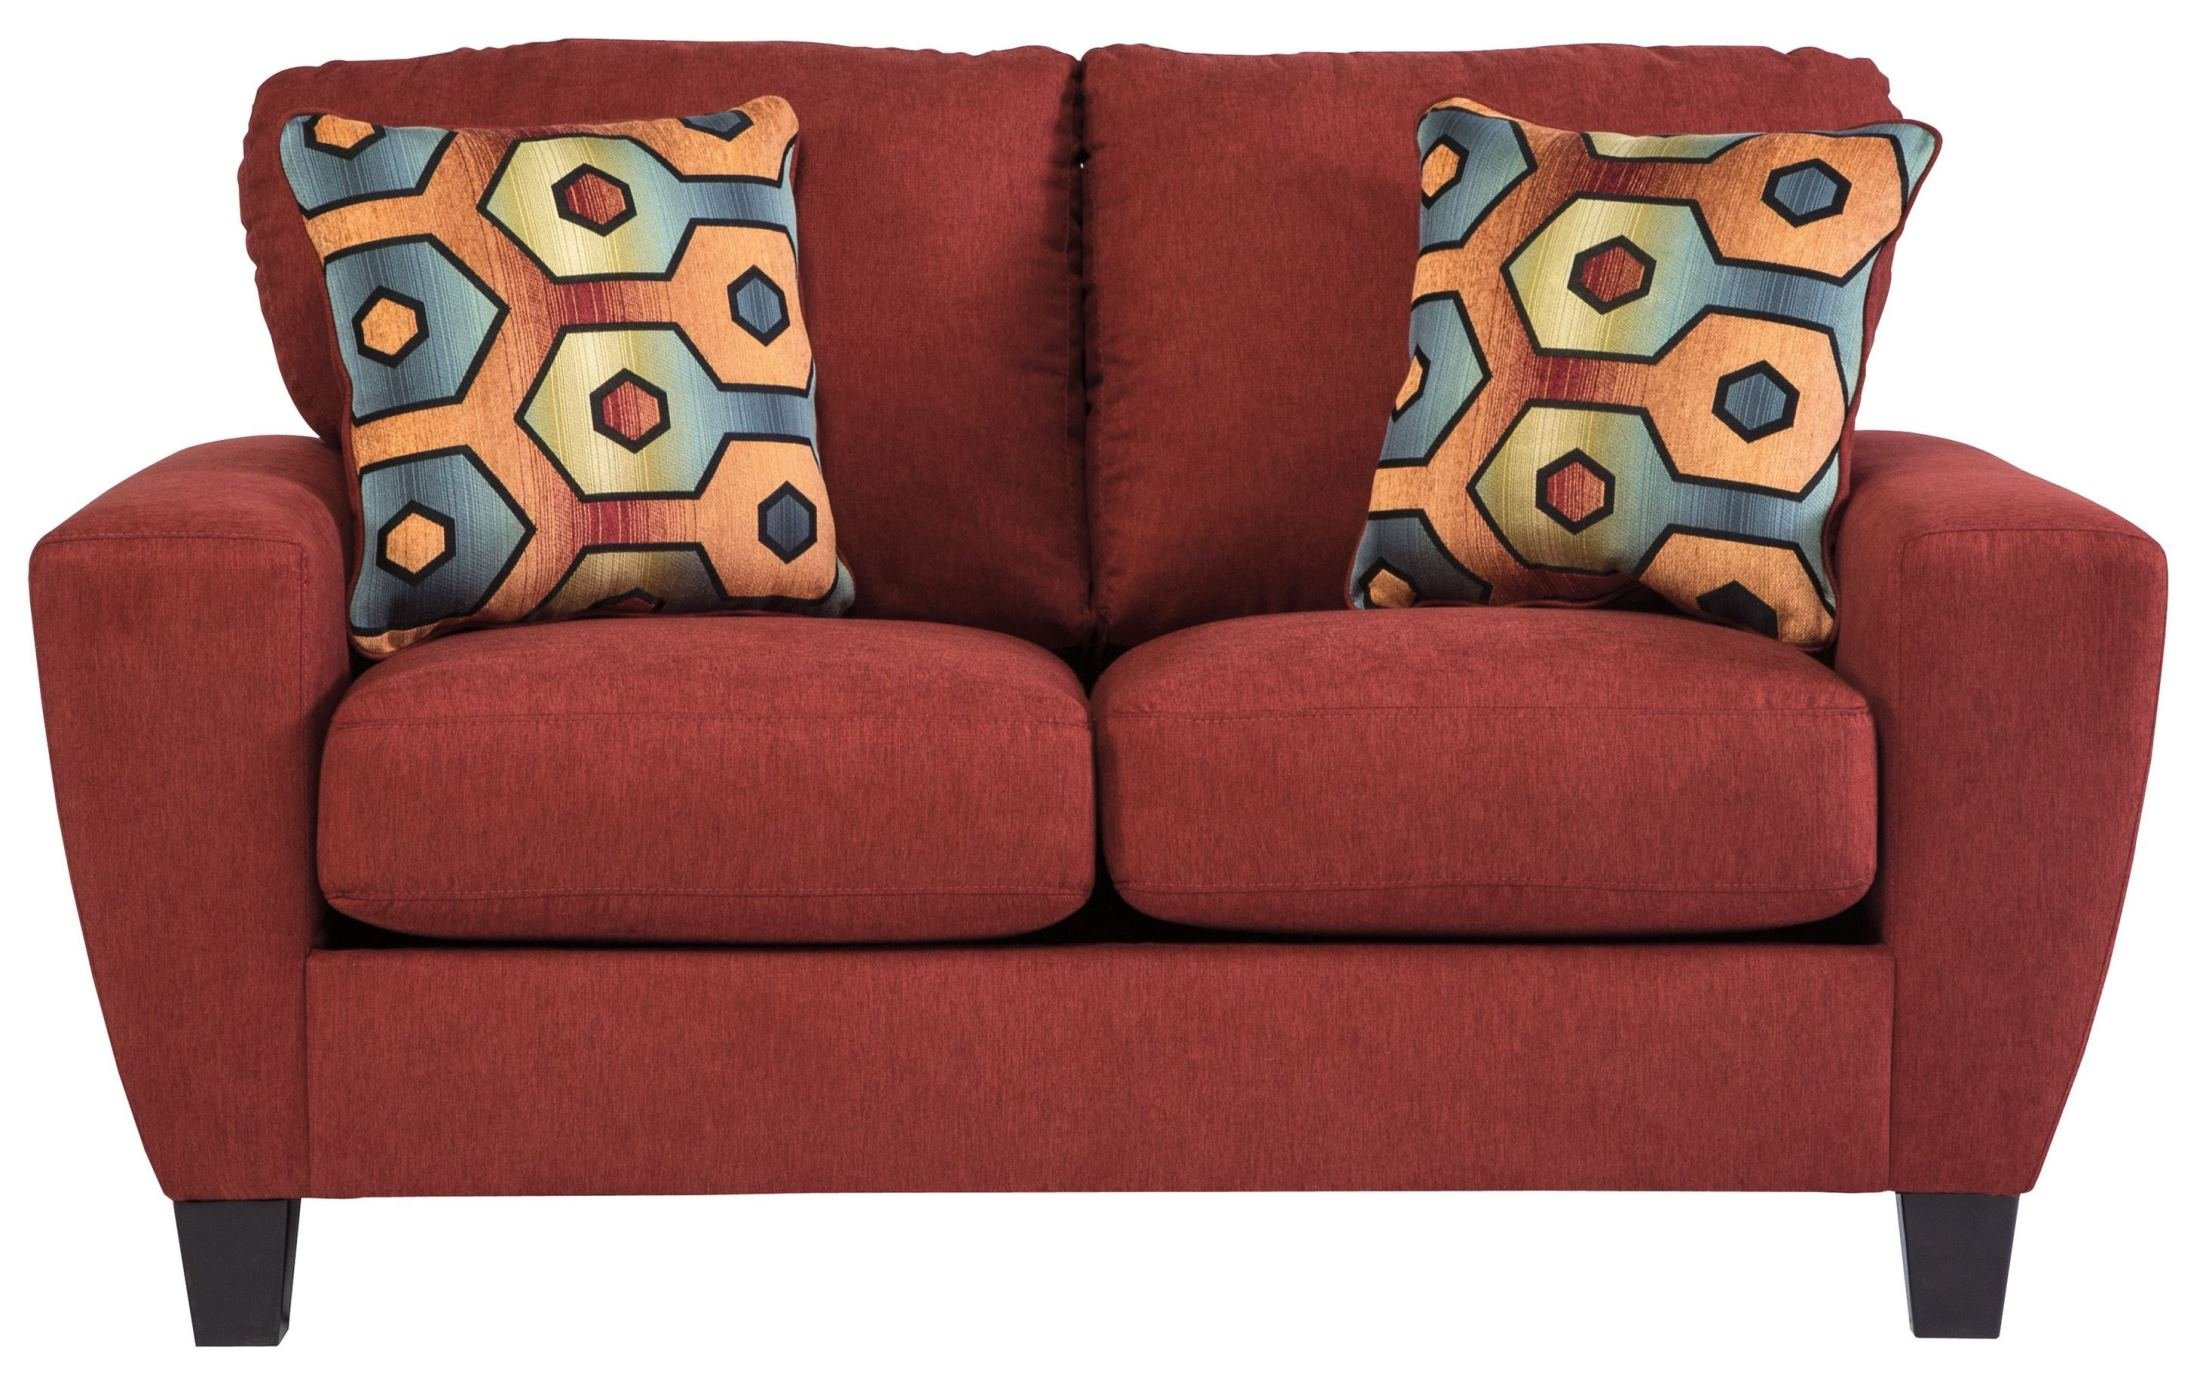 Ashley Furniture Signature Design - Sagen Loveseat Sofa - Contemporary Style Couch - Sienna Red